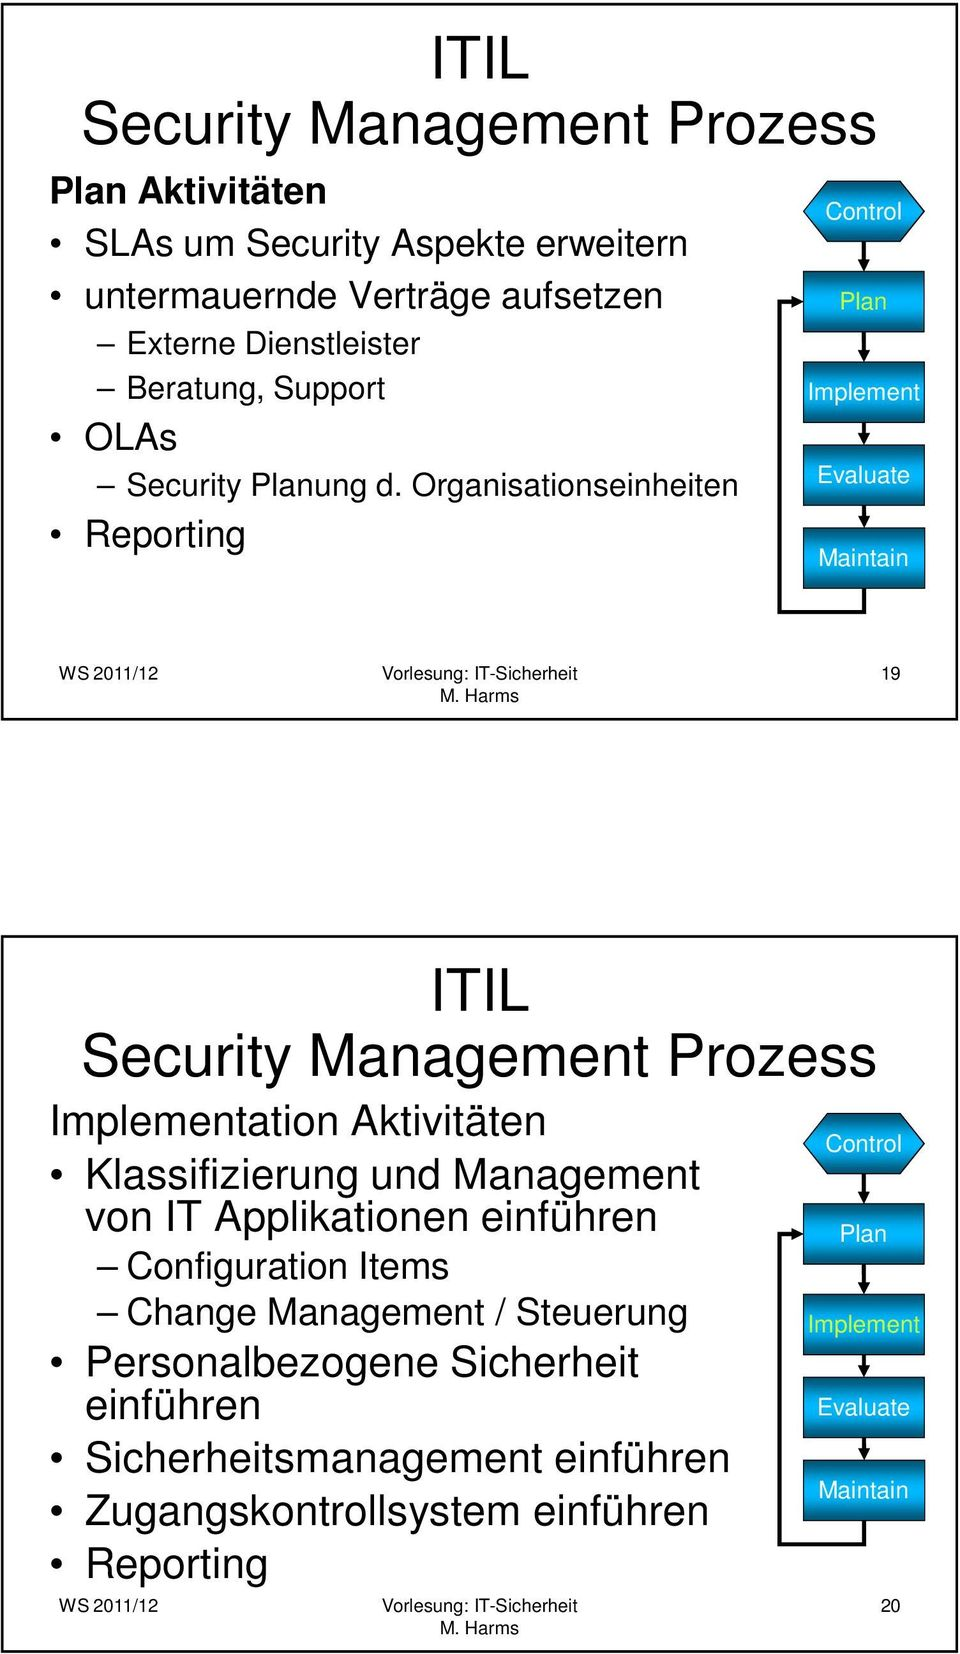 Organisationseinheiten Reporting Control Plan Implement Evaluate Maintain 19 ITIL Security Management Prozess Implementation Aktivitäten